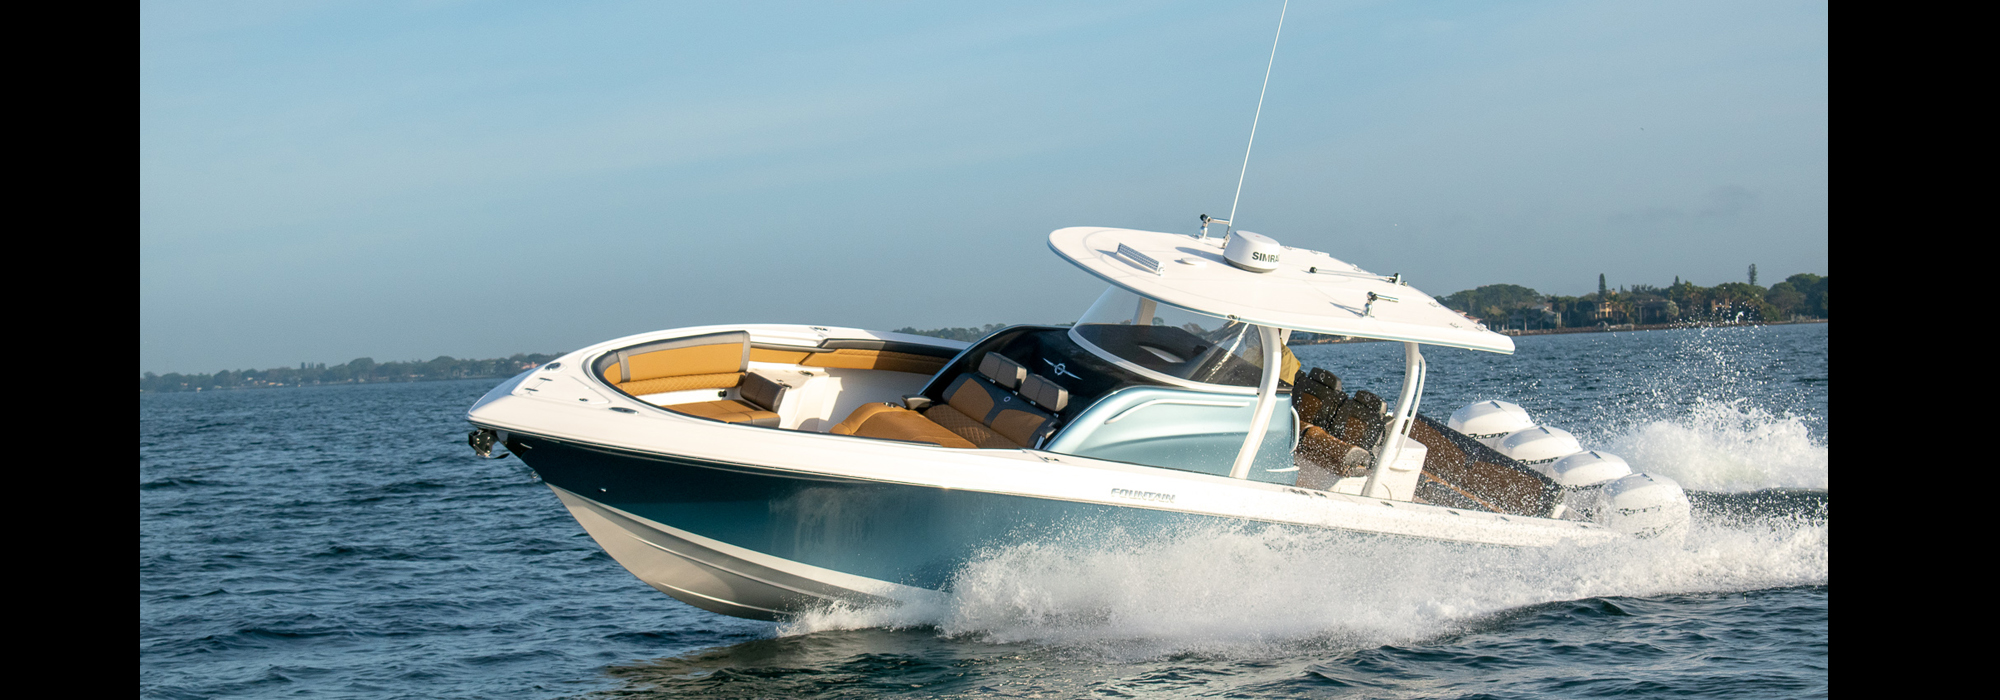 Fountain 43NX luxury center console fishing cruiser